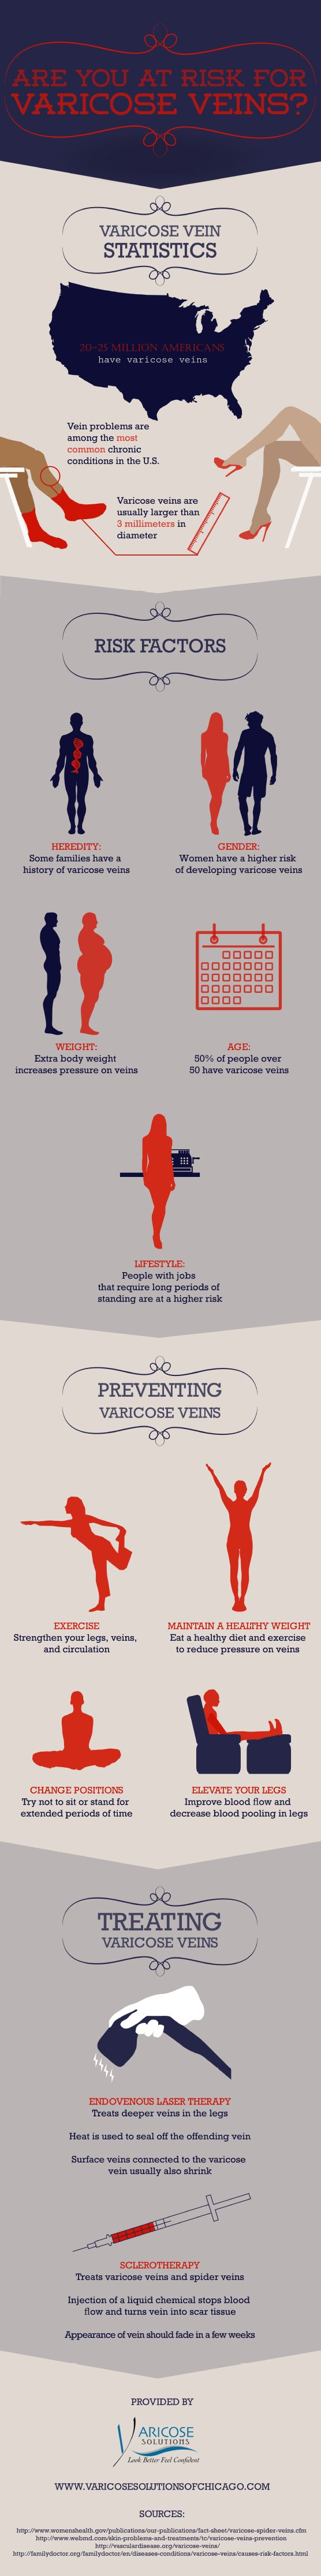 The Vein Care Center Offers Advanced Services Aesthetic Treatments For All Sorts Of